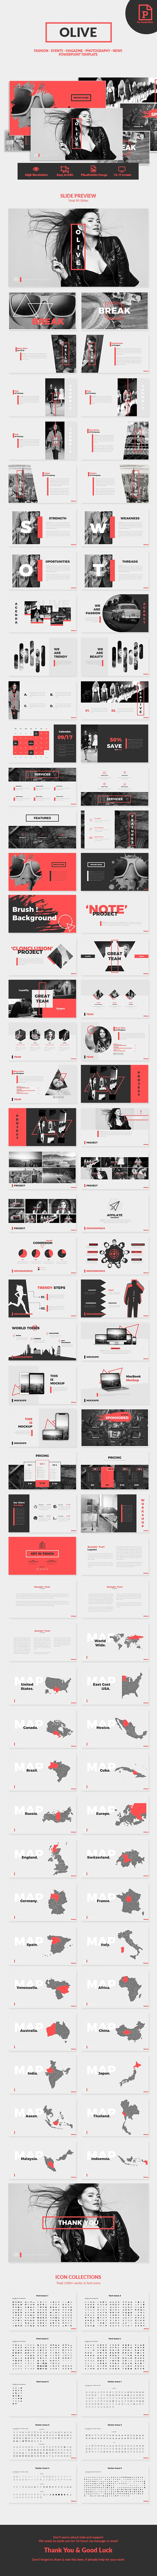 Olive - Fashion PowerPoint Template | Creative powerpoint ...